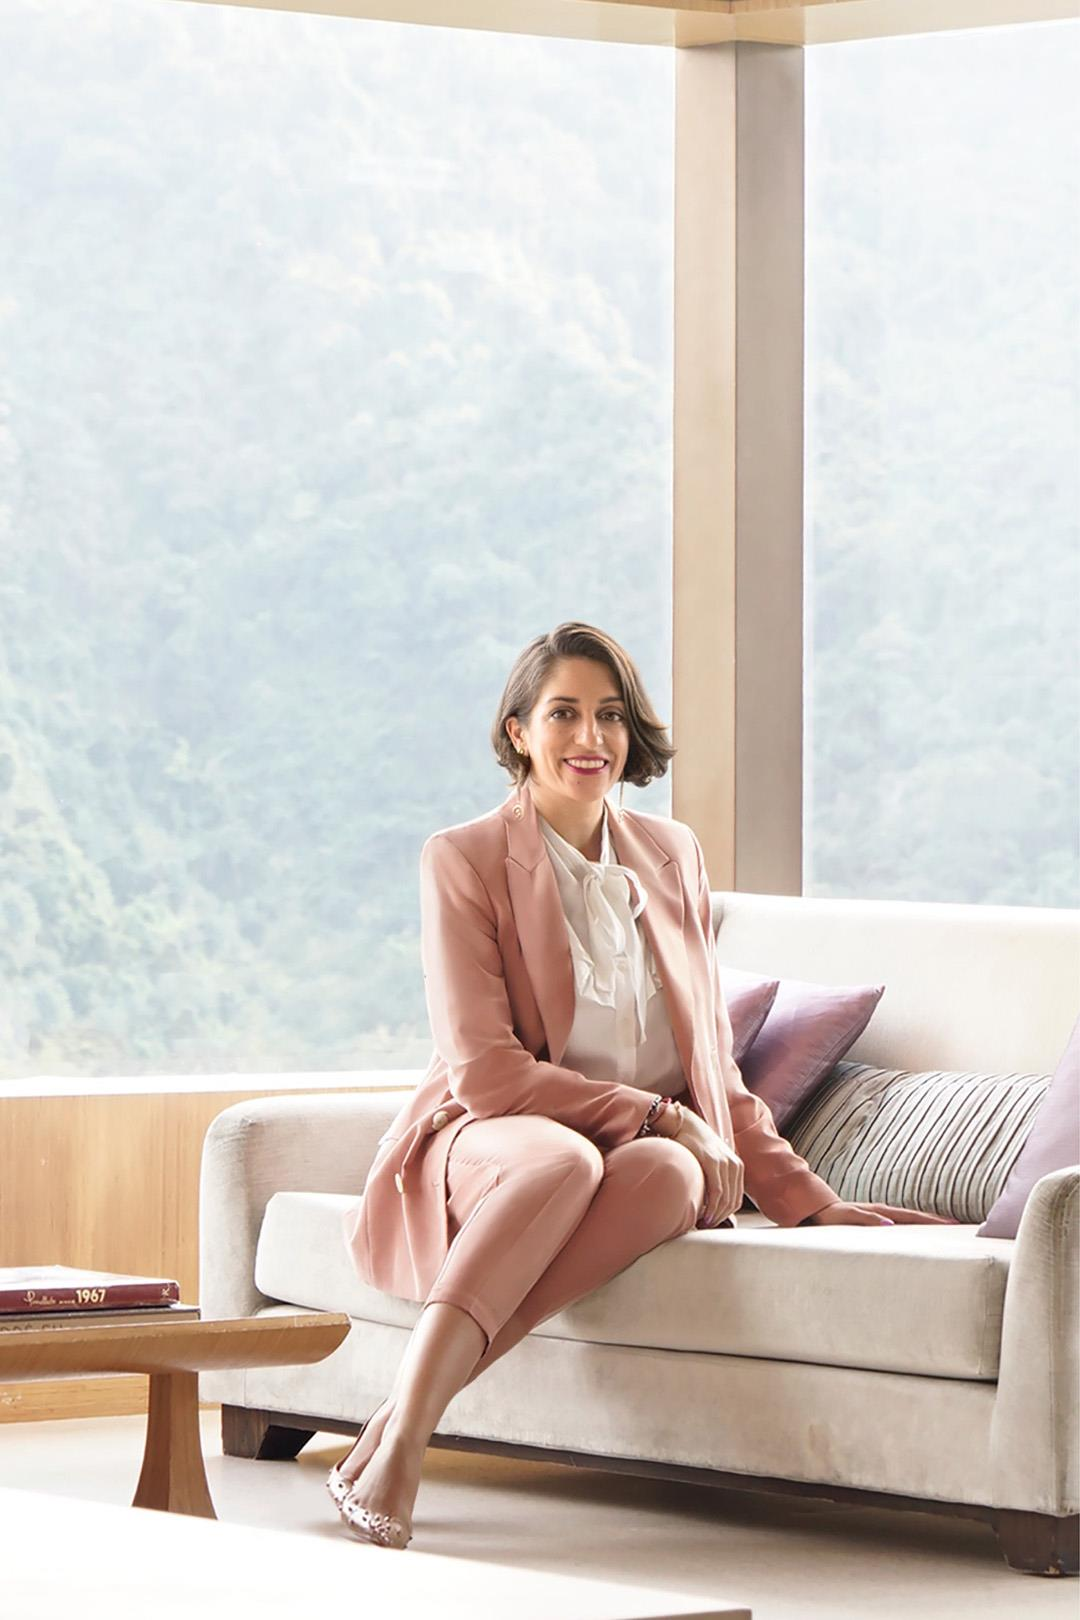 Kristina Snaith-Lense , the hotel manager of The Upper House from Swire Hotels